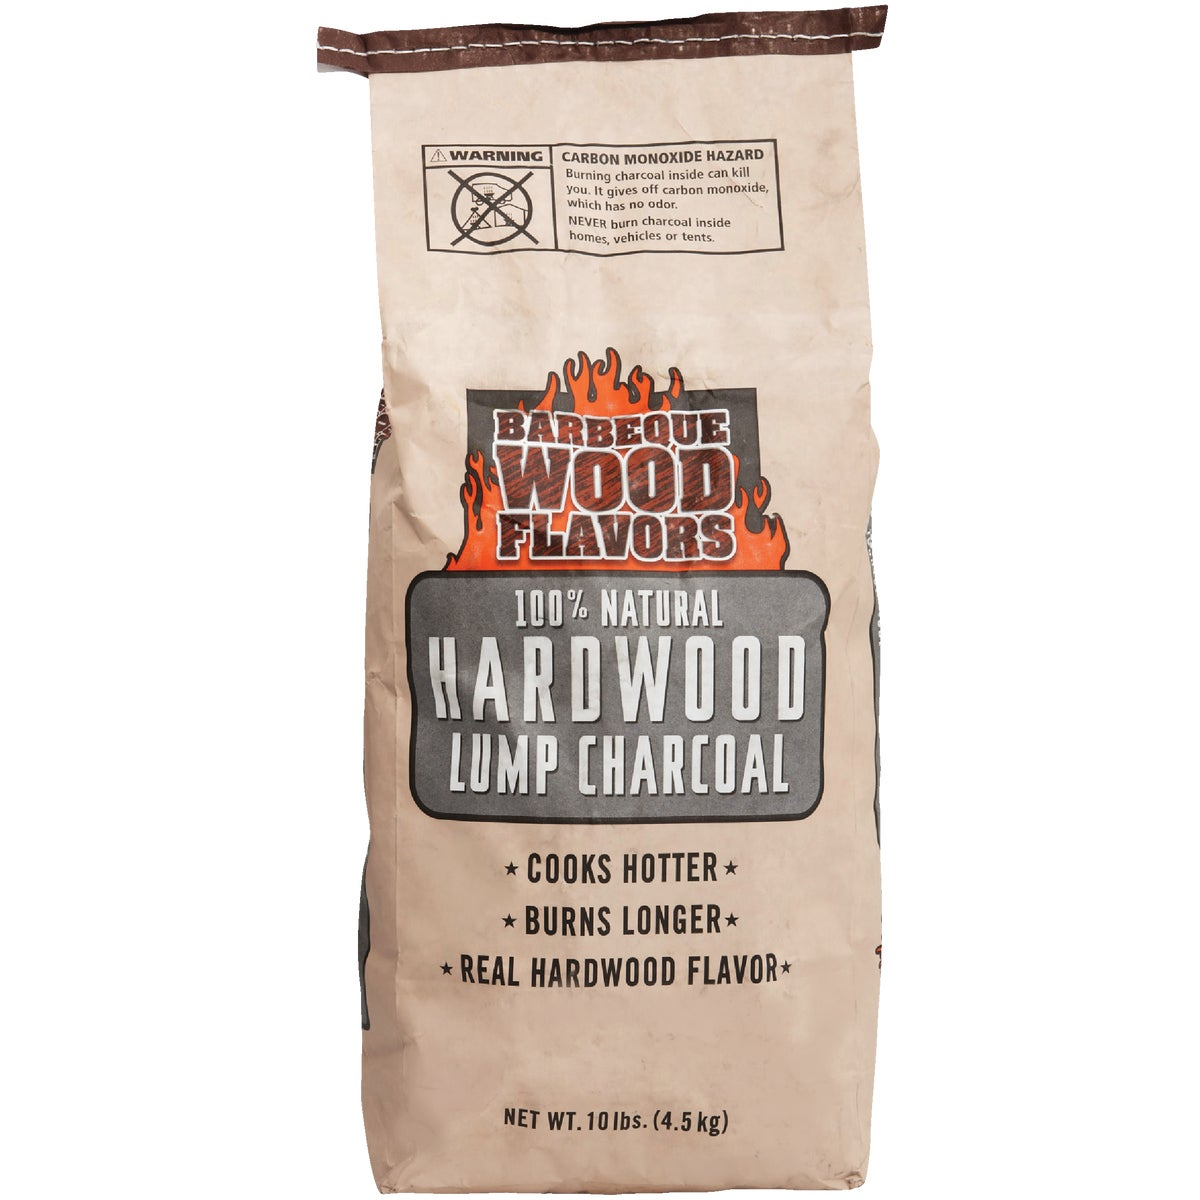 10LB LUMP CHARCOAL - 30501 by Barbeque Wood Flavor